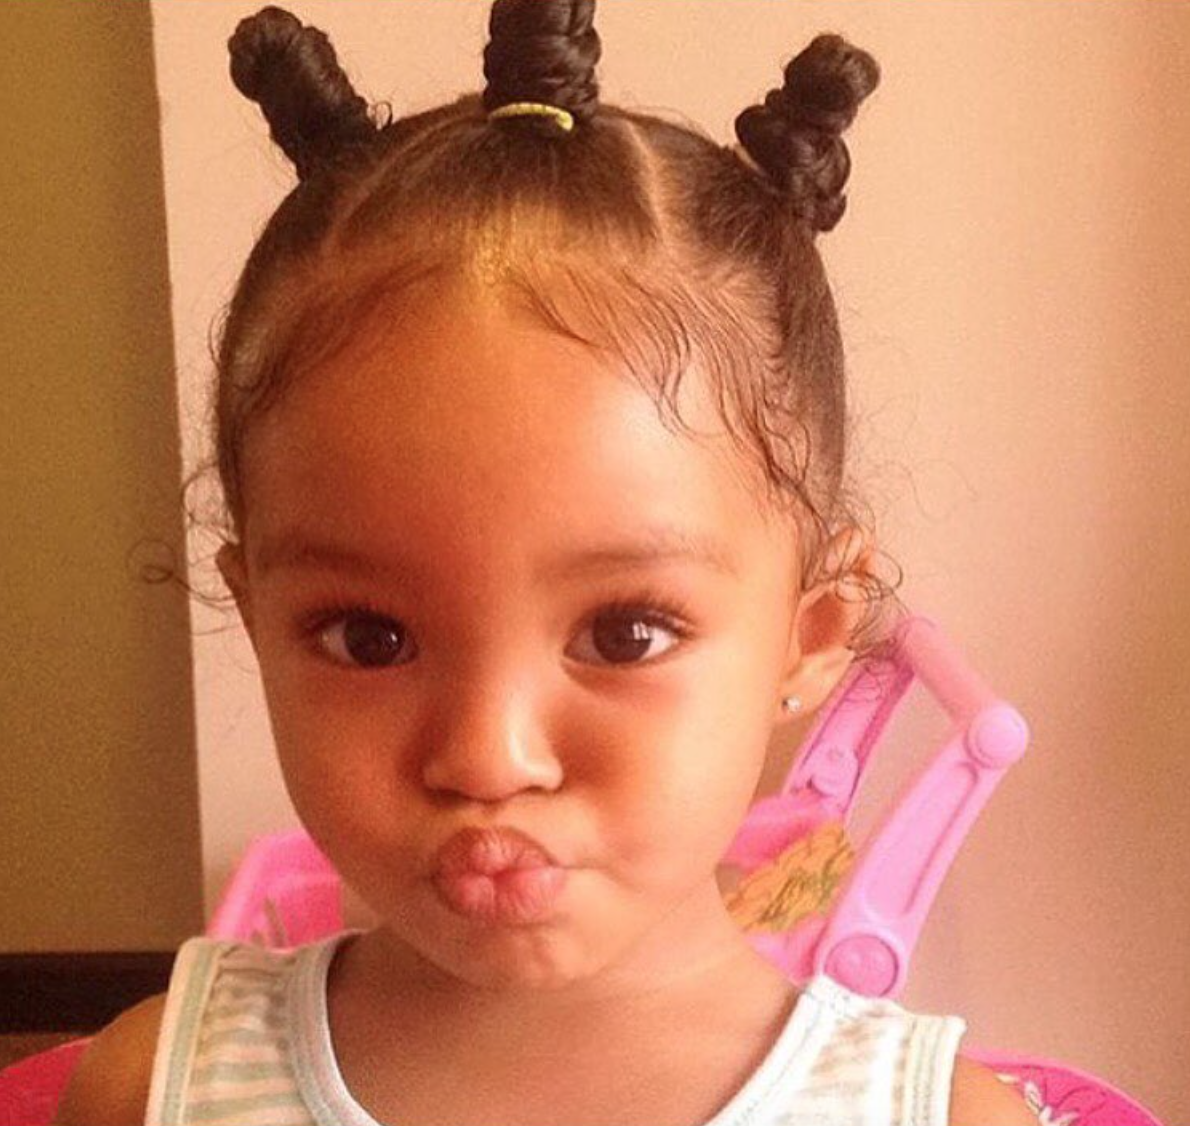 adorable baby bantu knots @justice.bryanna - http://community